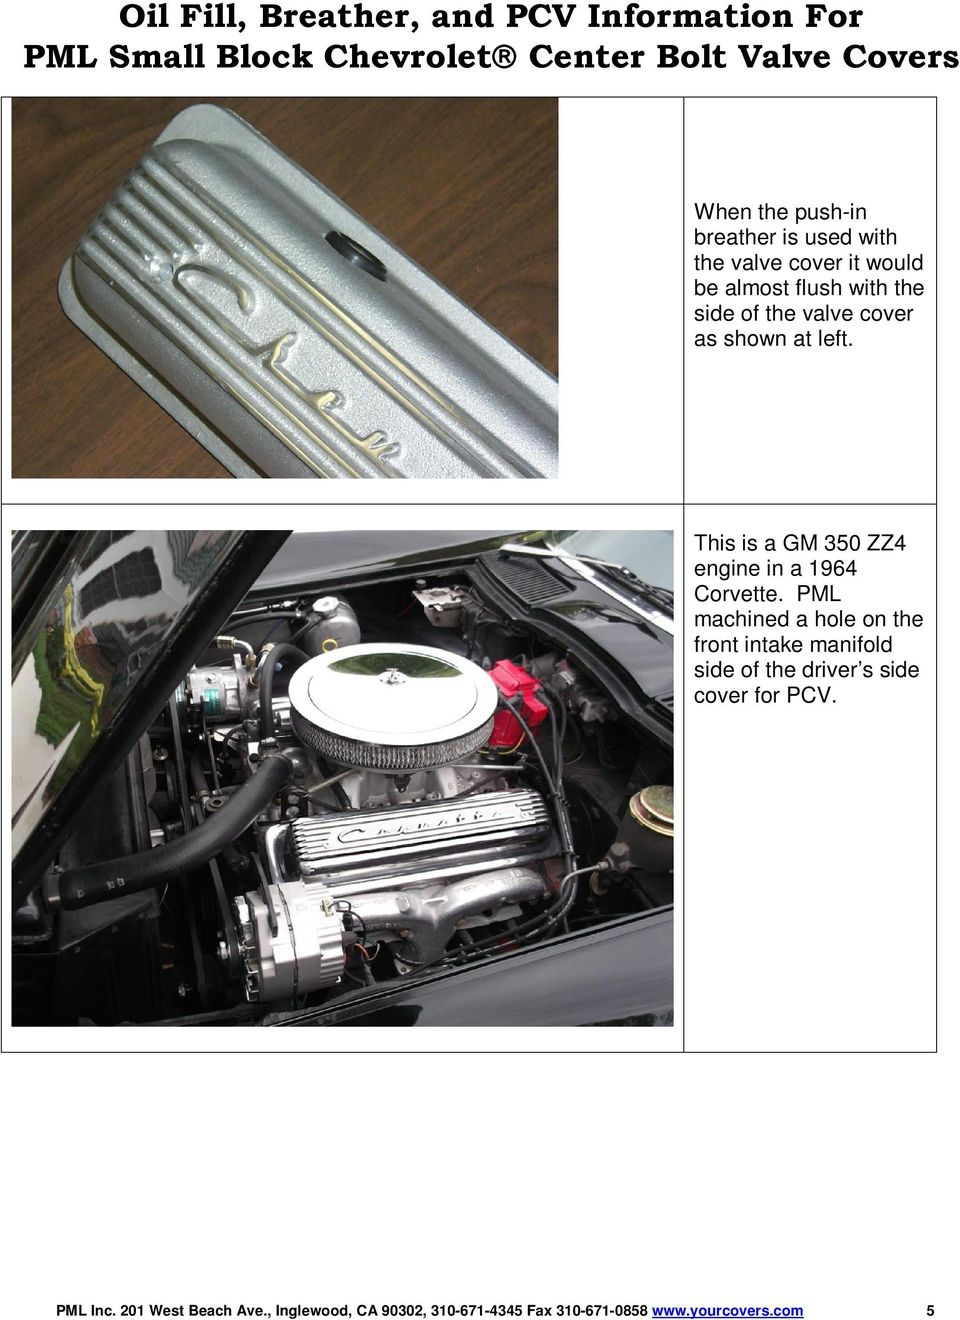 Oil Fill Breather And Pcv Information For Pml Small Block